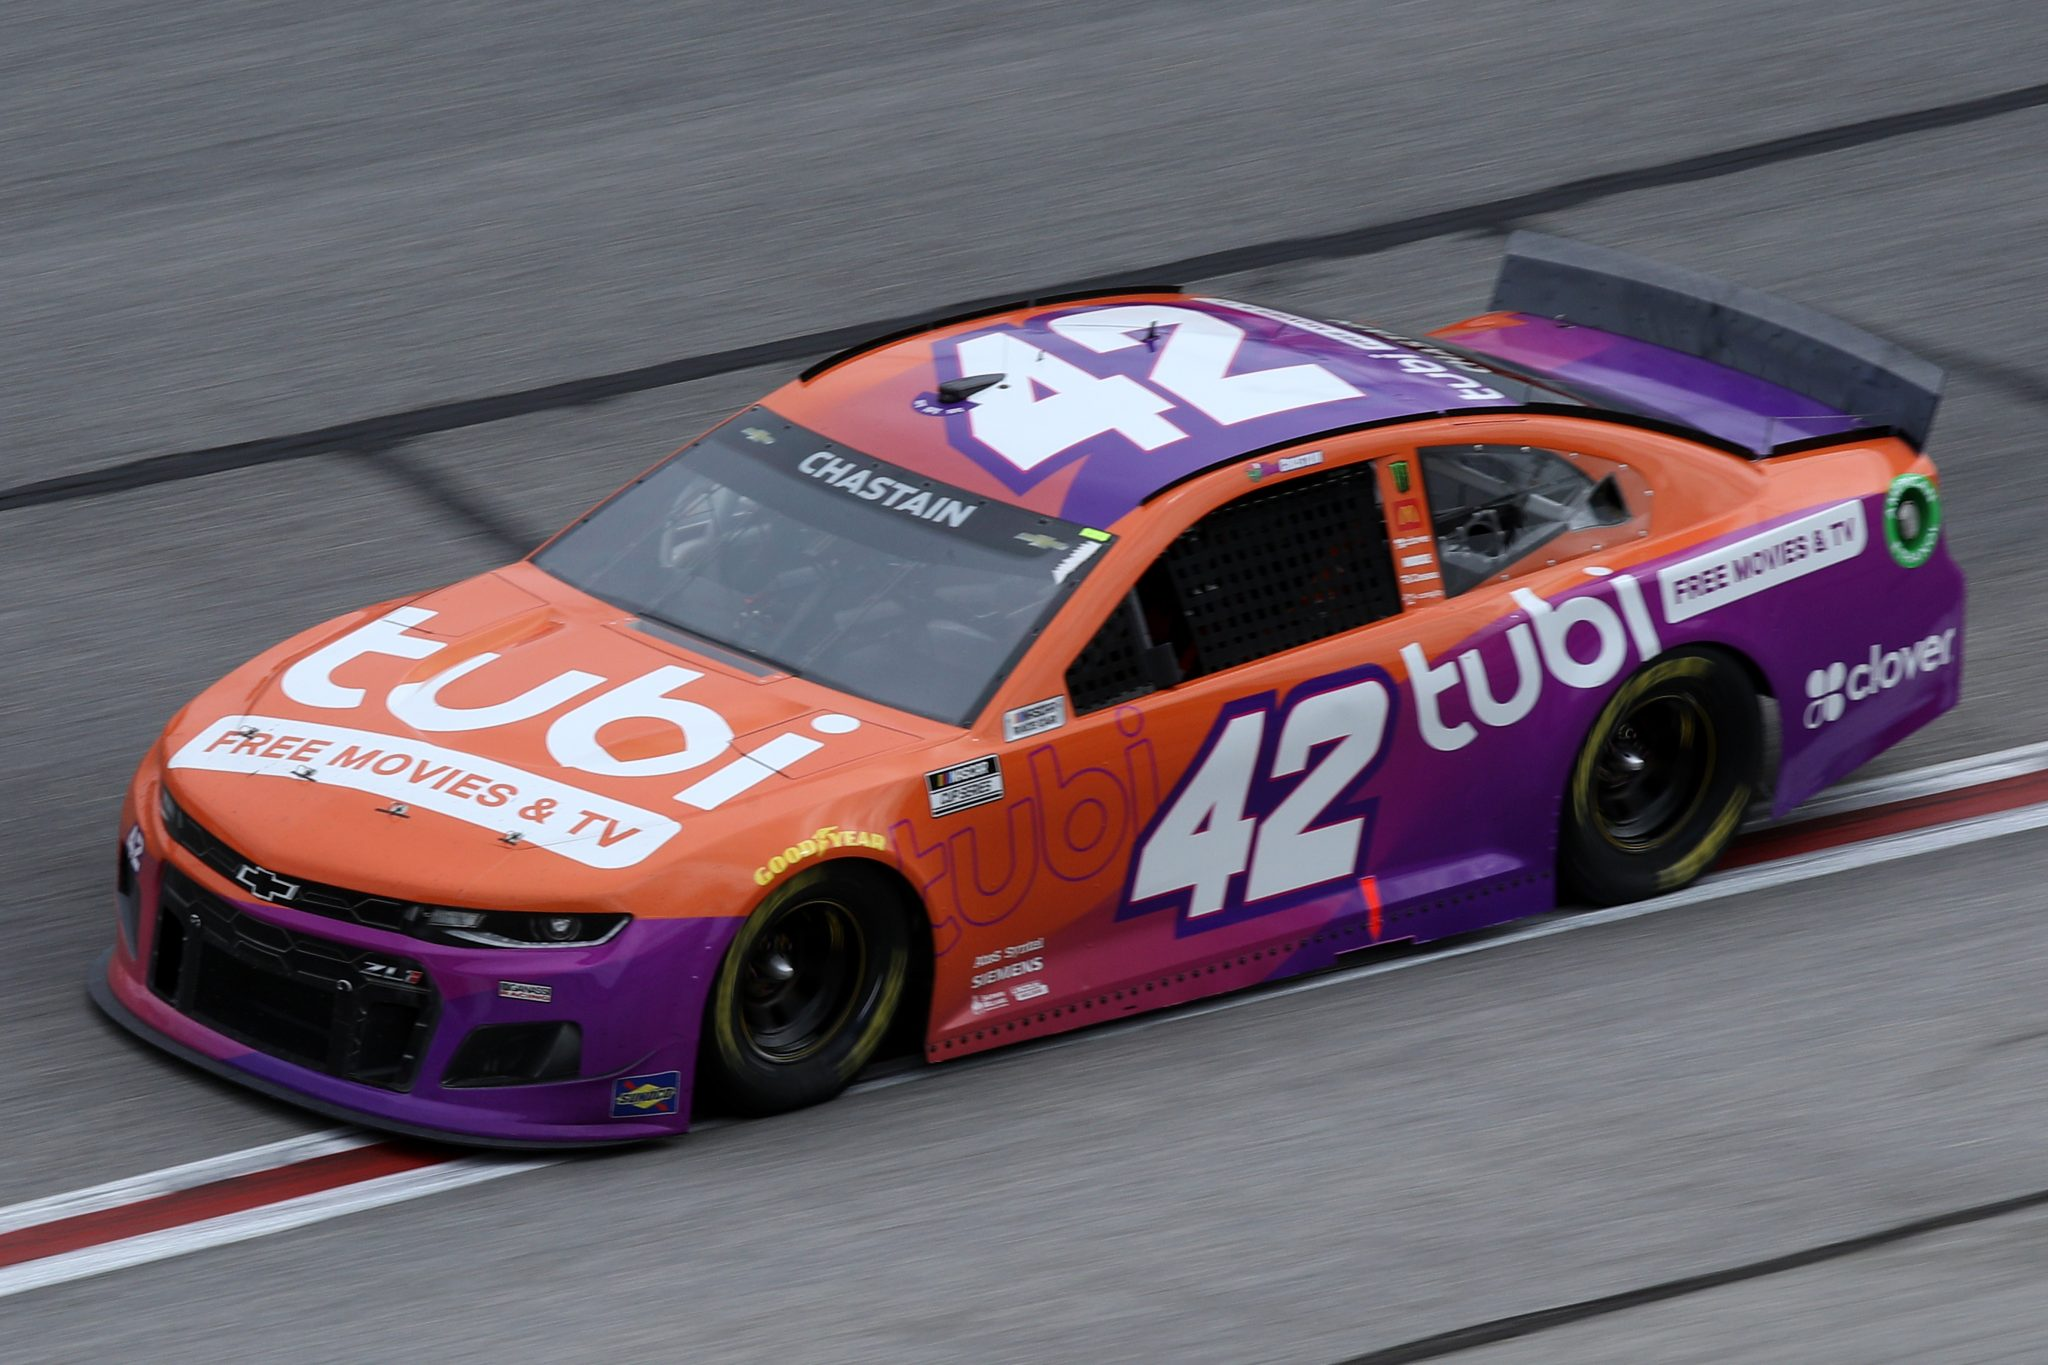 HAMPTON, GEORGIA - MARCH 21: Ross Chastain, driver of the #42 Tubi TV Chevrolet, drives during the NASCAR Cup Series Folds of Honor QuikTrip 500 at Atlanta Motor Speedway on March 21, 2021 in Hampton, Georgia. (Photo by Sean Gardner/Getty Images) | Getty Images